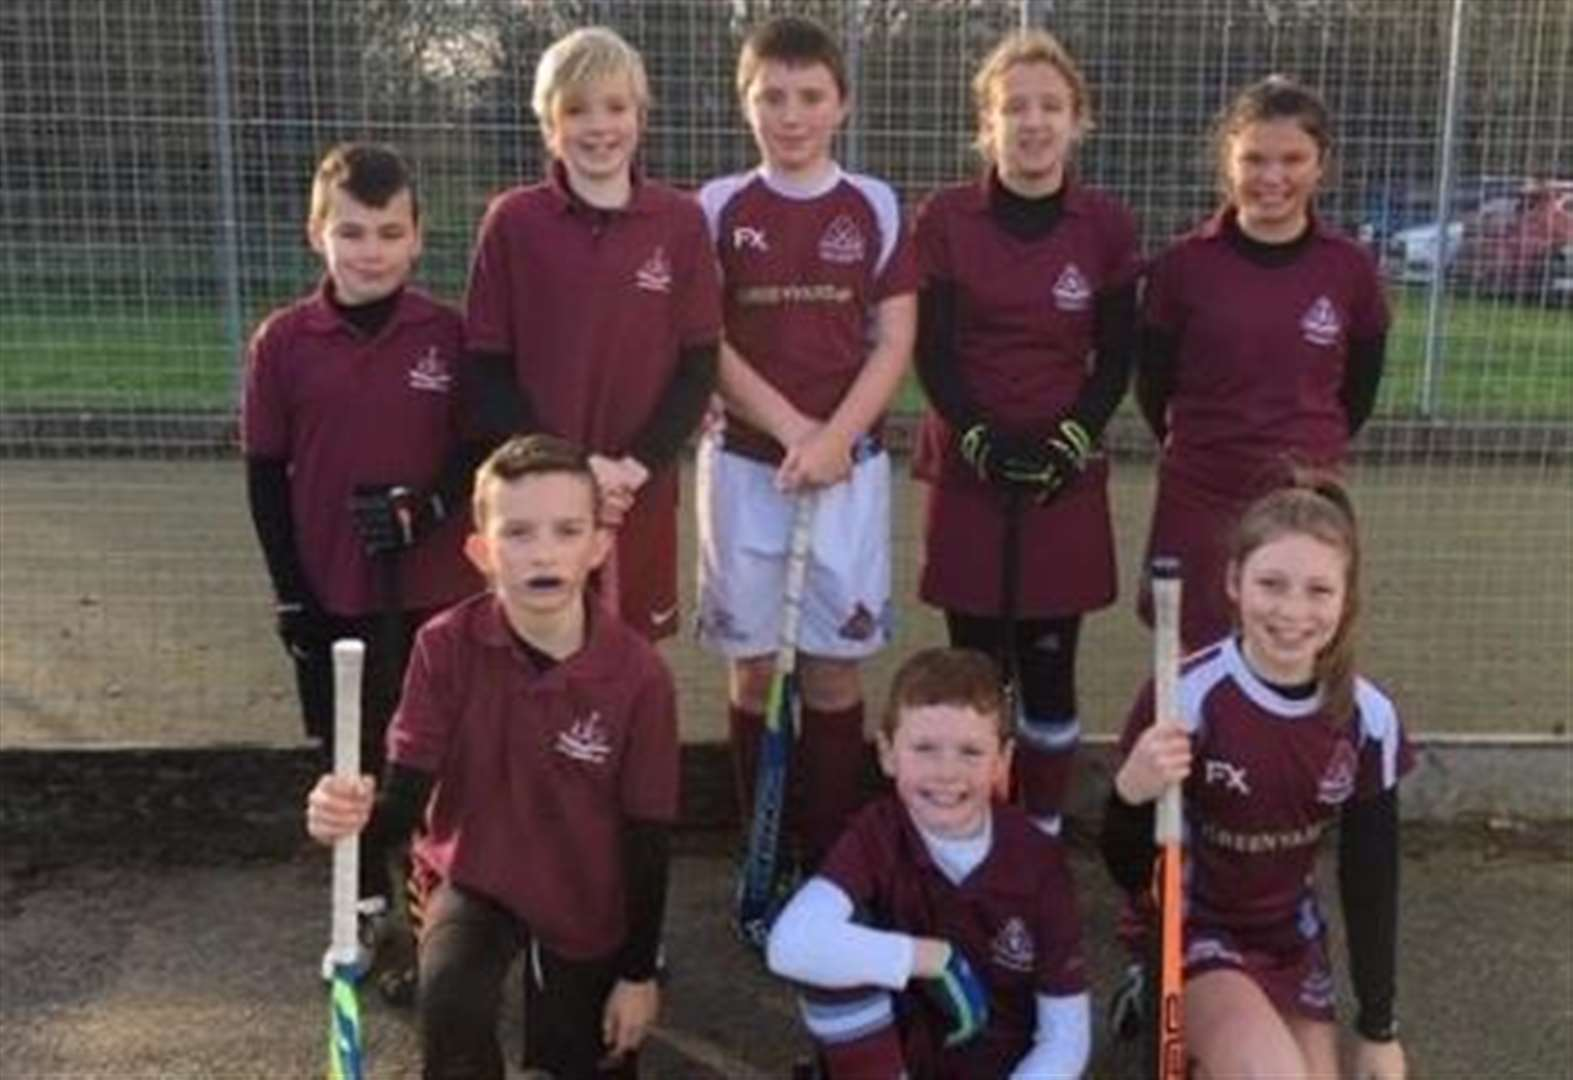 HOCKEY: A hat-trick of wins for Spalding Lions